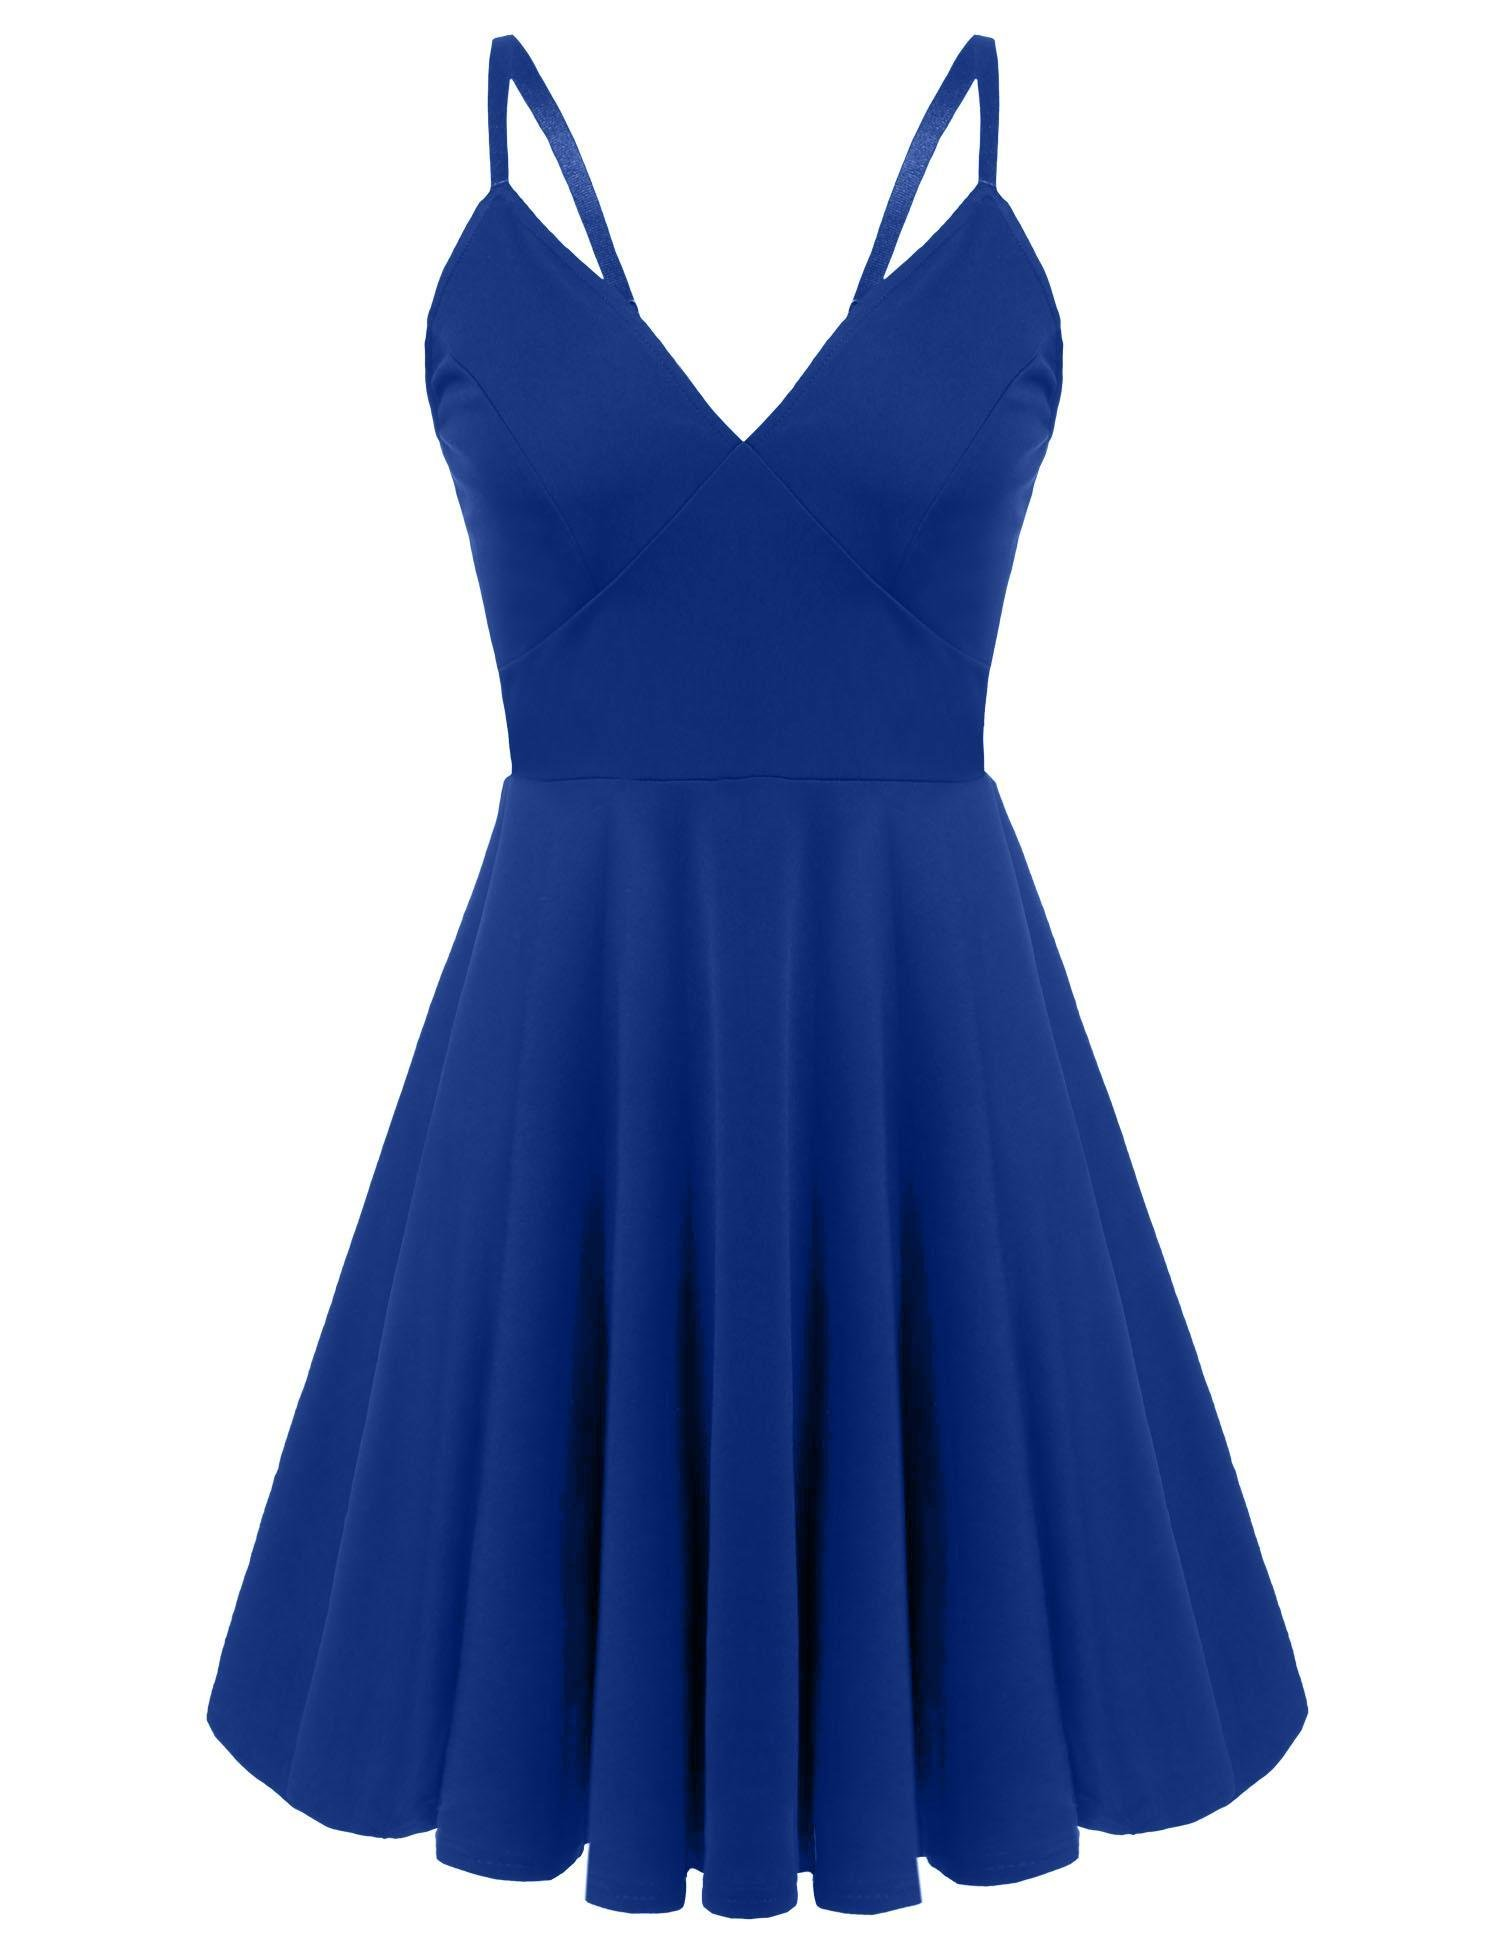 Available at Amazon: ELESOL Women Sexy Deep V-Neck Backless Spaghetti Strap Skater Dress